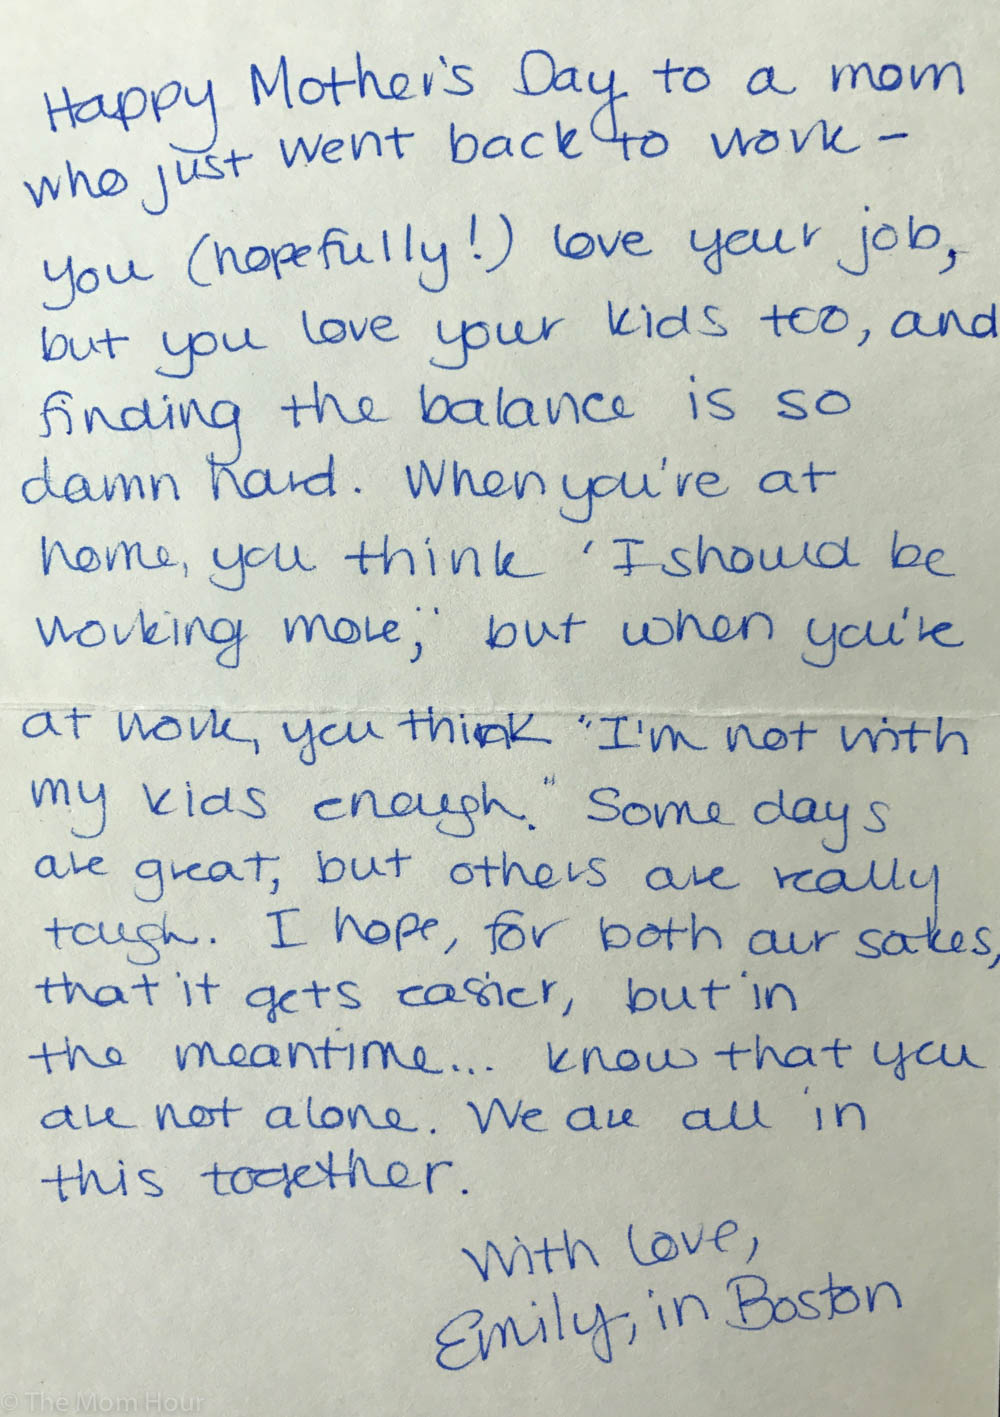 88051c71dfa These handwritten Mother's Day letters prove moms have each other's backs